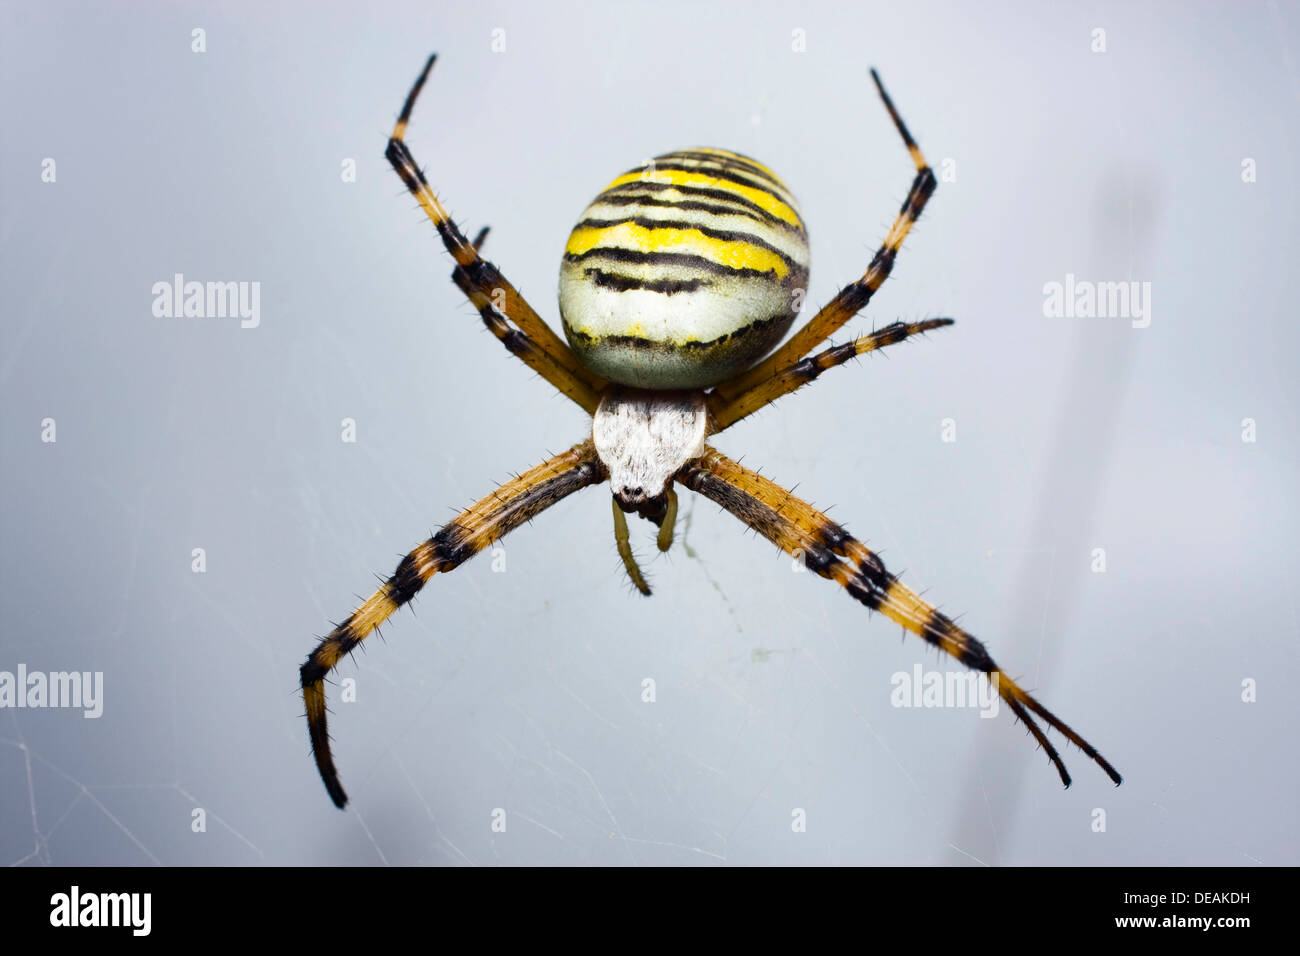 orb weben spinne wespe spider argiope bruennichi stockfoto bild 60471085 alamy. Black Bedroom Furniture Sets. Home Design Ideas